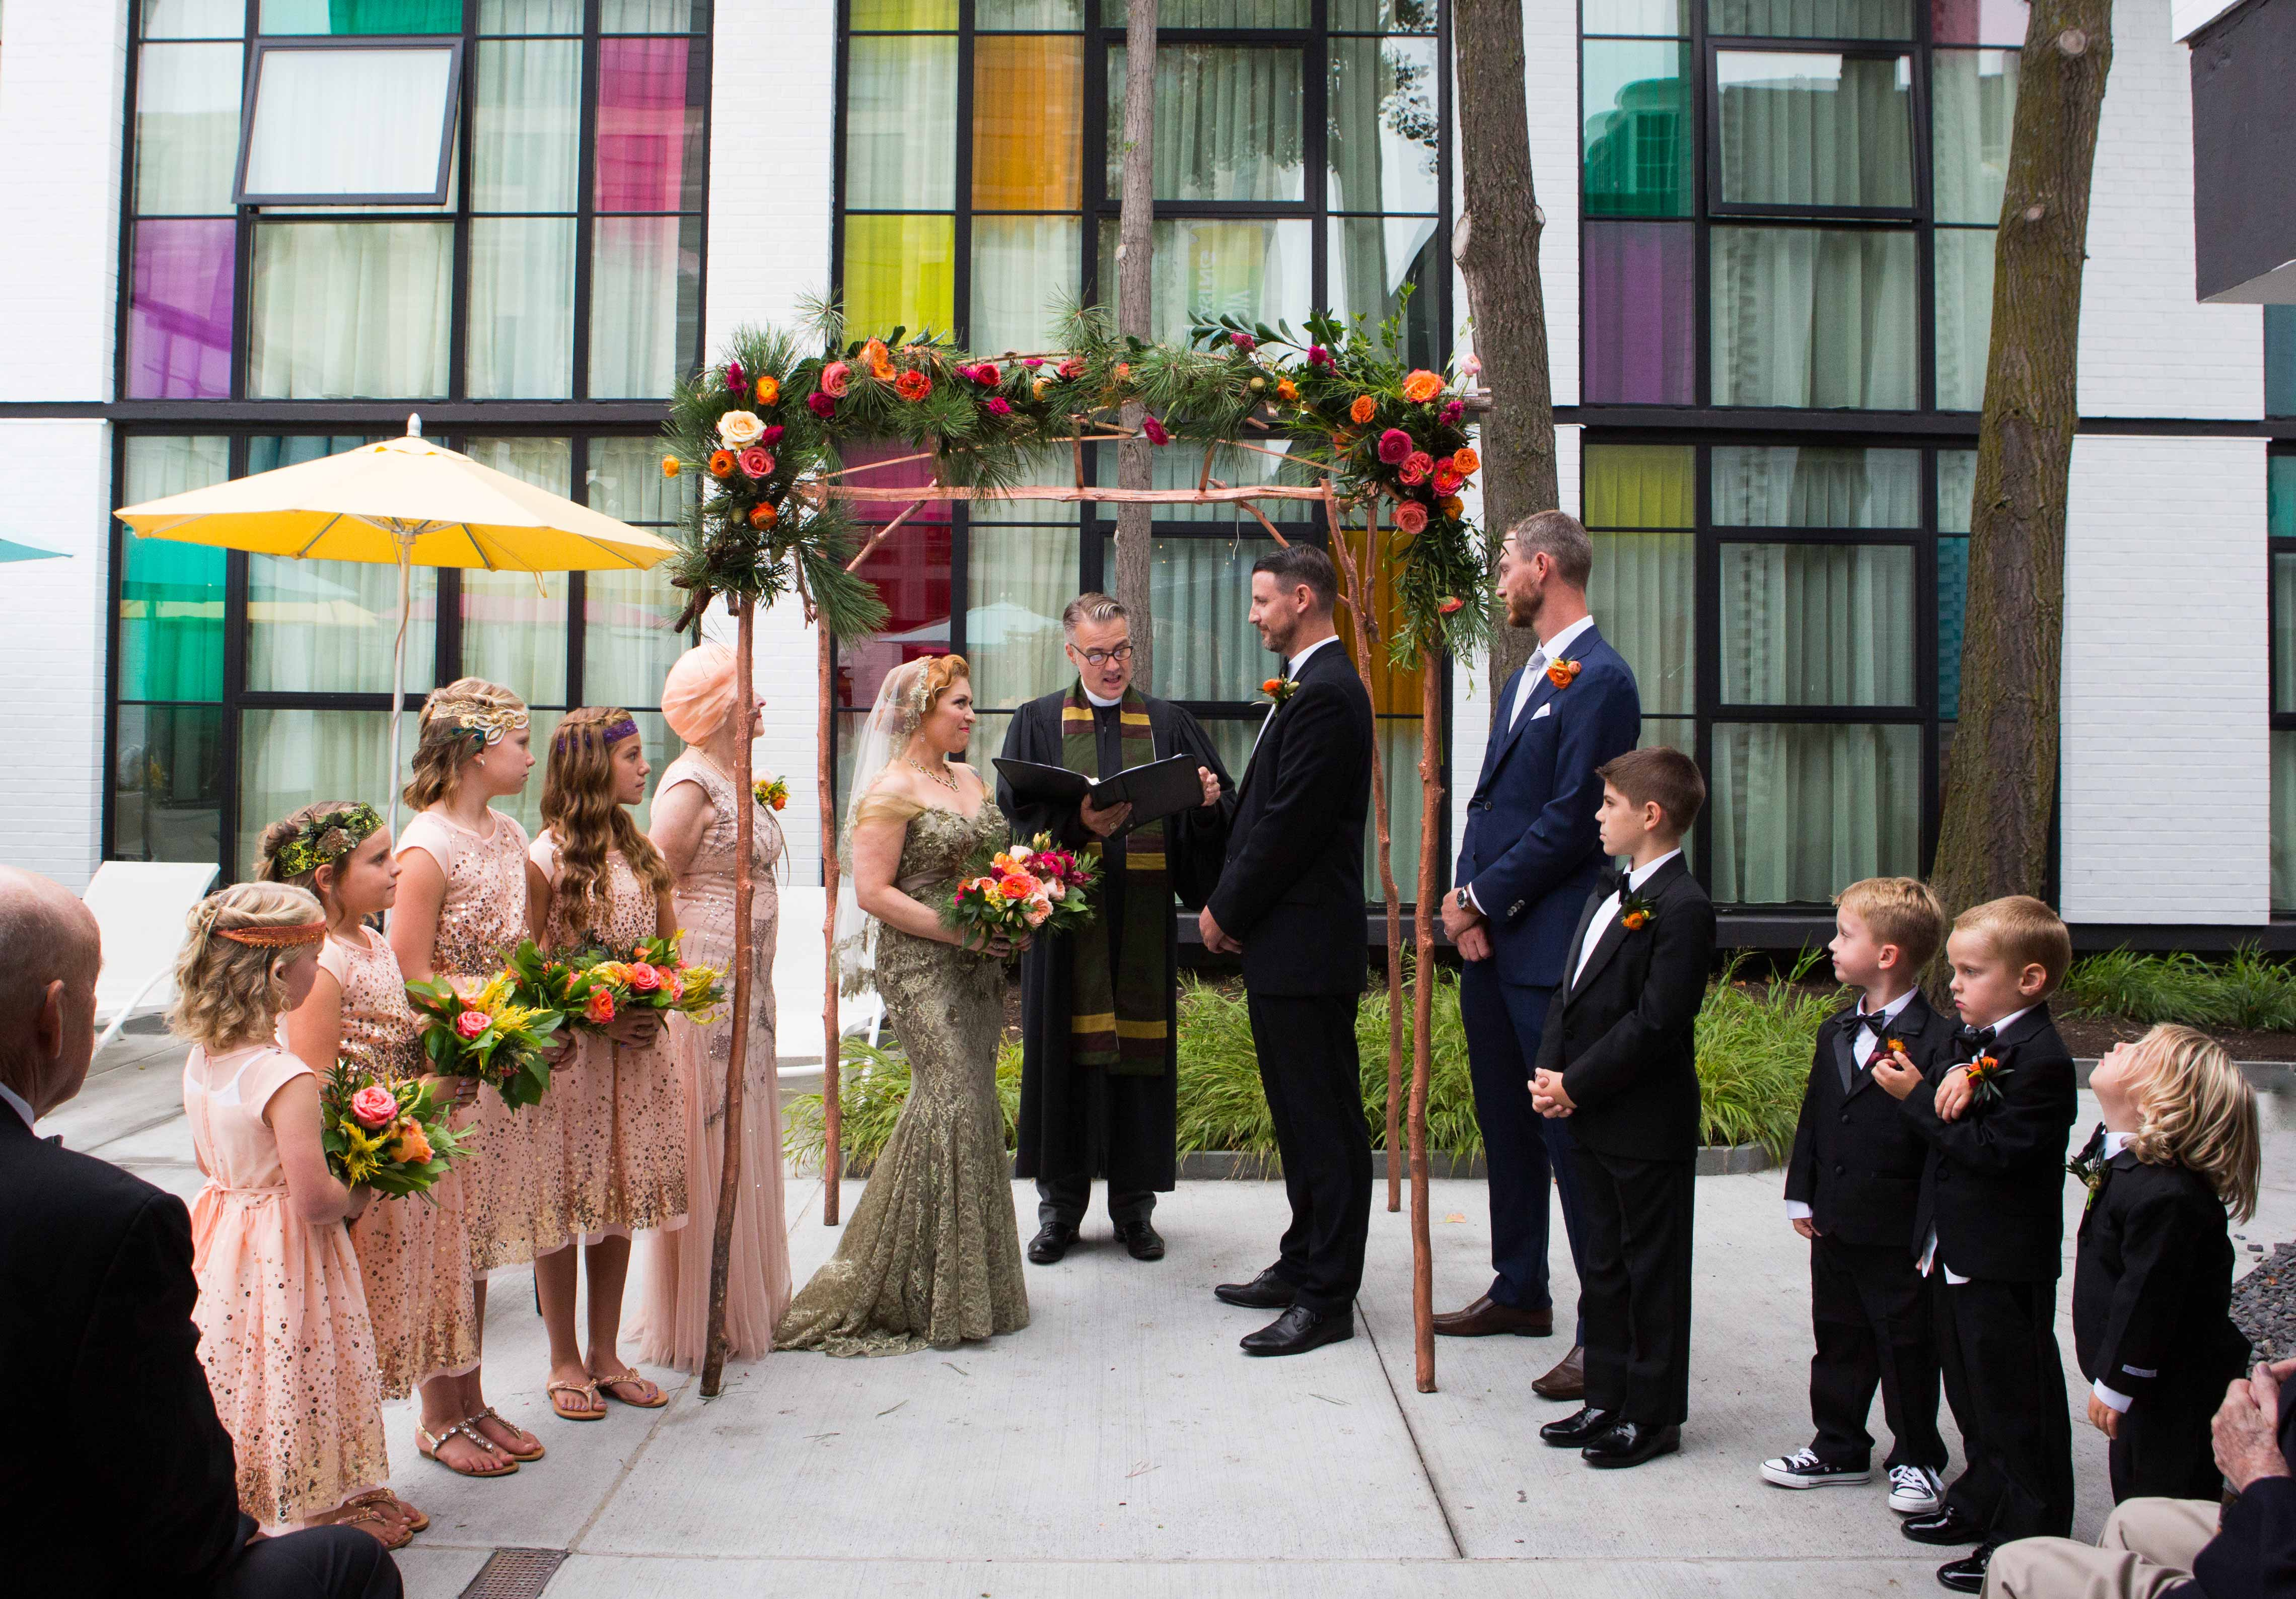 Outdoor wedding ceremony at Verb Hotel mother of bride as matron of honor